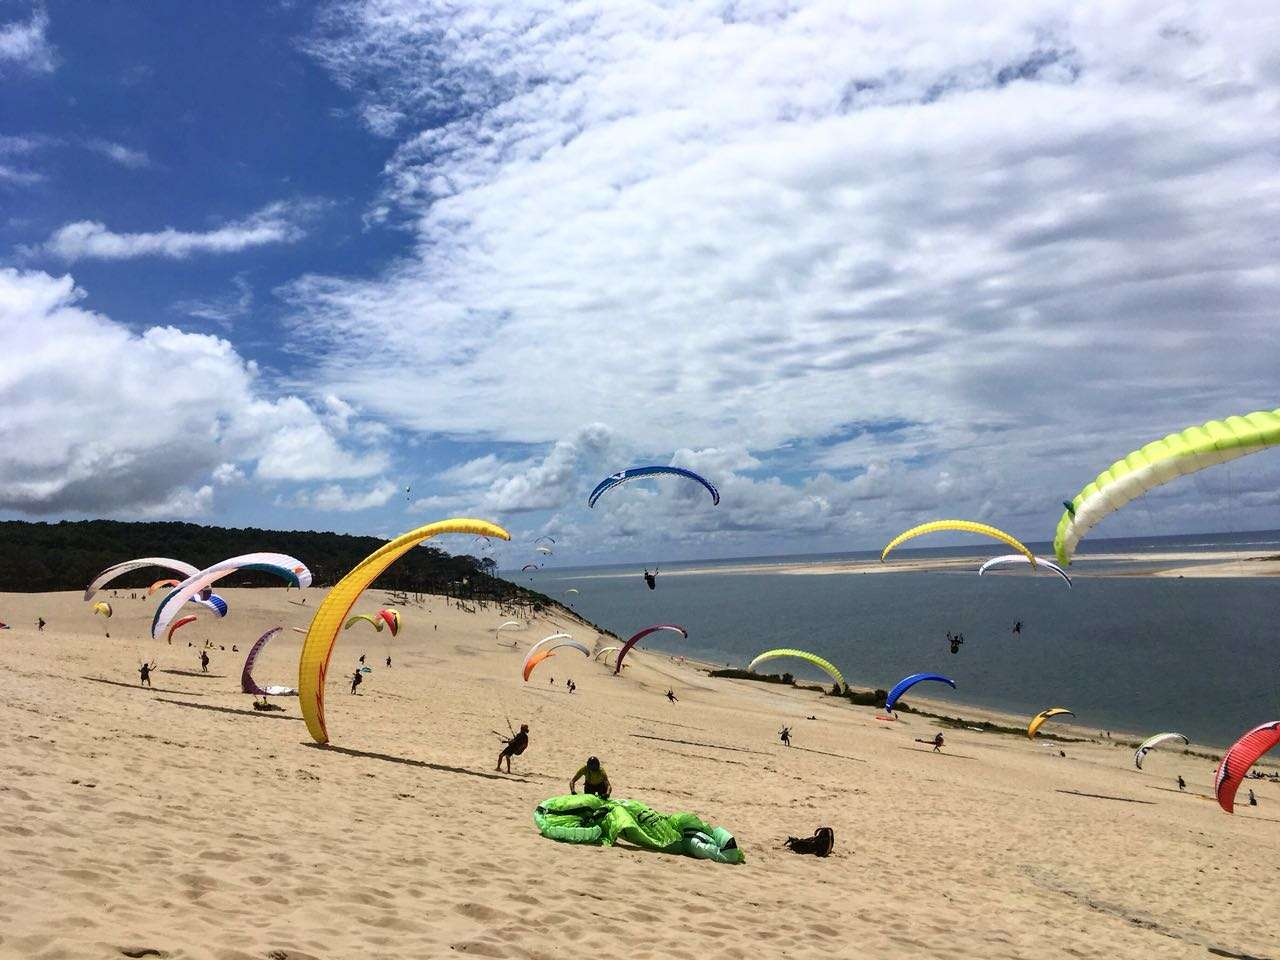 Crazy beach paragliding at Europe's most loved coastal site